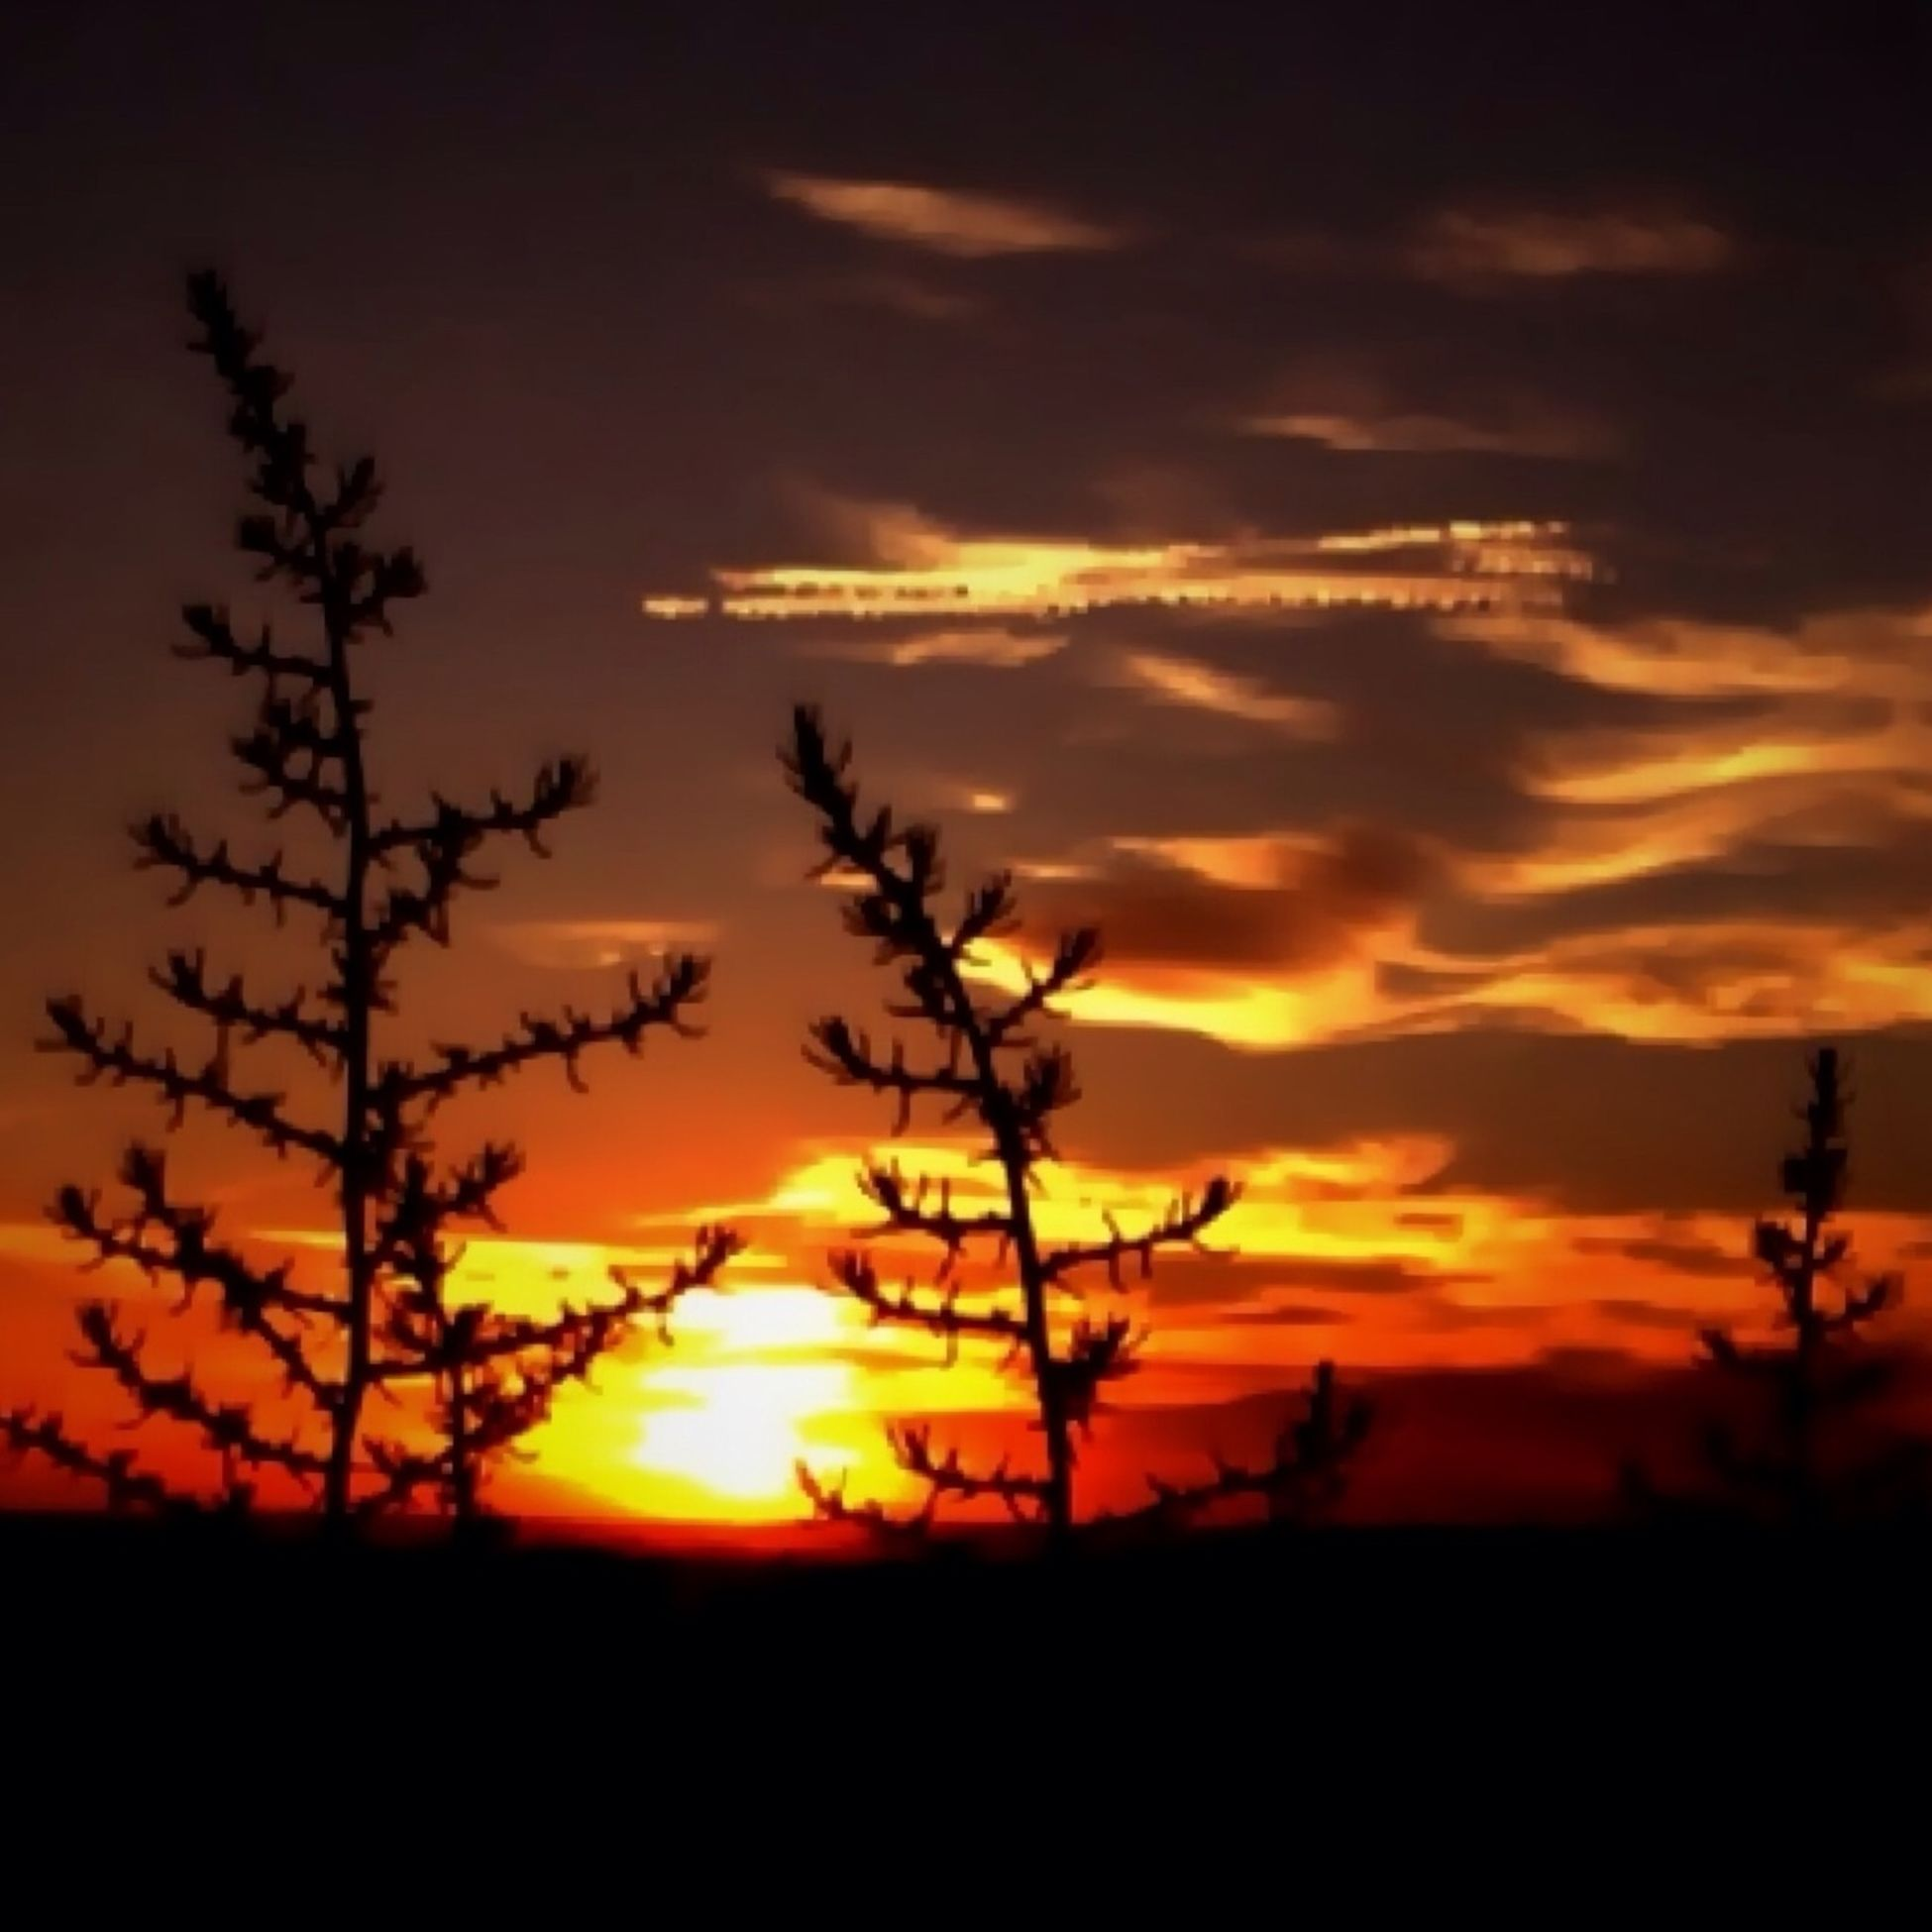 sunset, silhouette, orange color, sky, beauty in nature, scenics, tranquil scene, sun, tranquility, nature, idyllic, landscape, cloud - sky, dramatic sky, cloud, plant, field, growth, majestic, tree